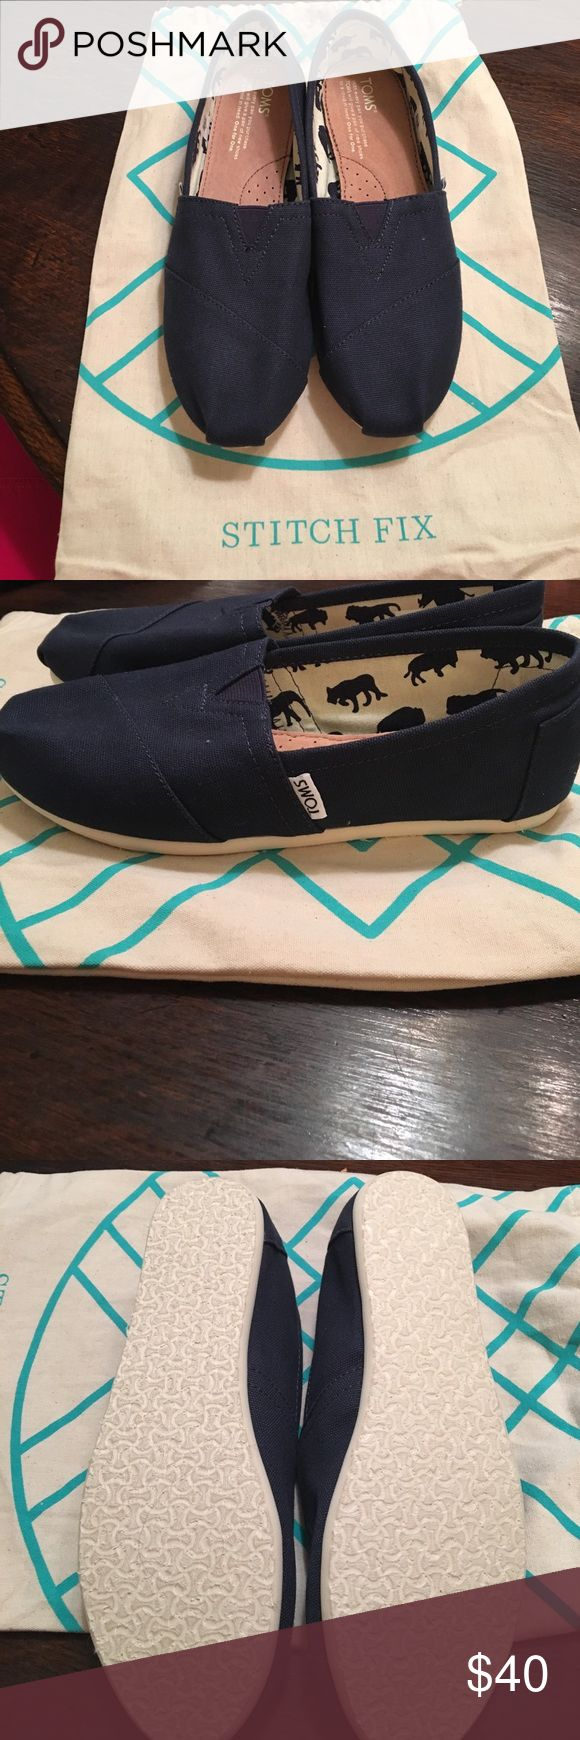 Brand new navy canvas Toms. Received in stitch fix but already had a pair. Never worn. TOMS Shoes Flats & Loafers